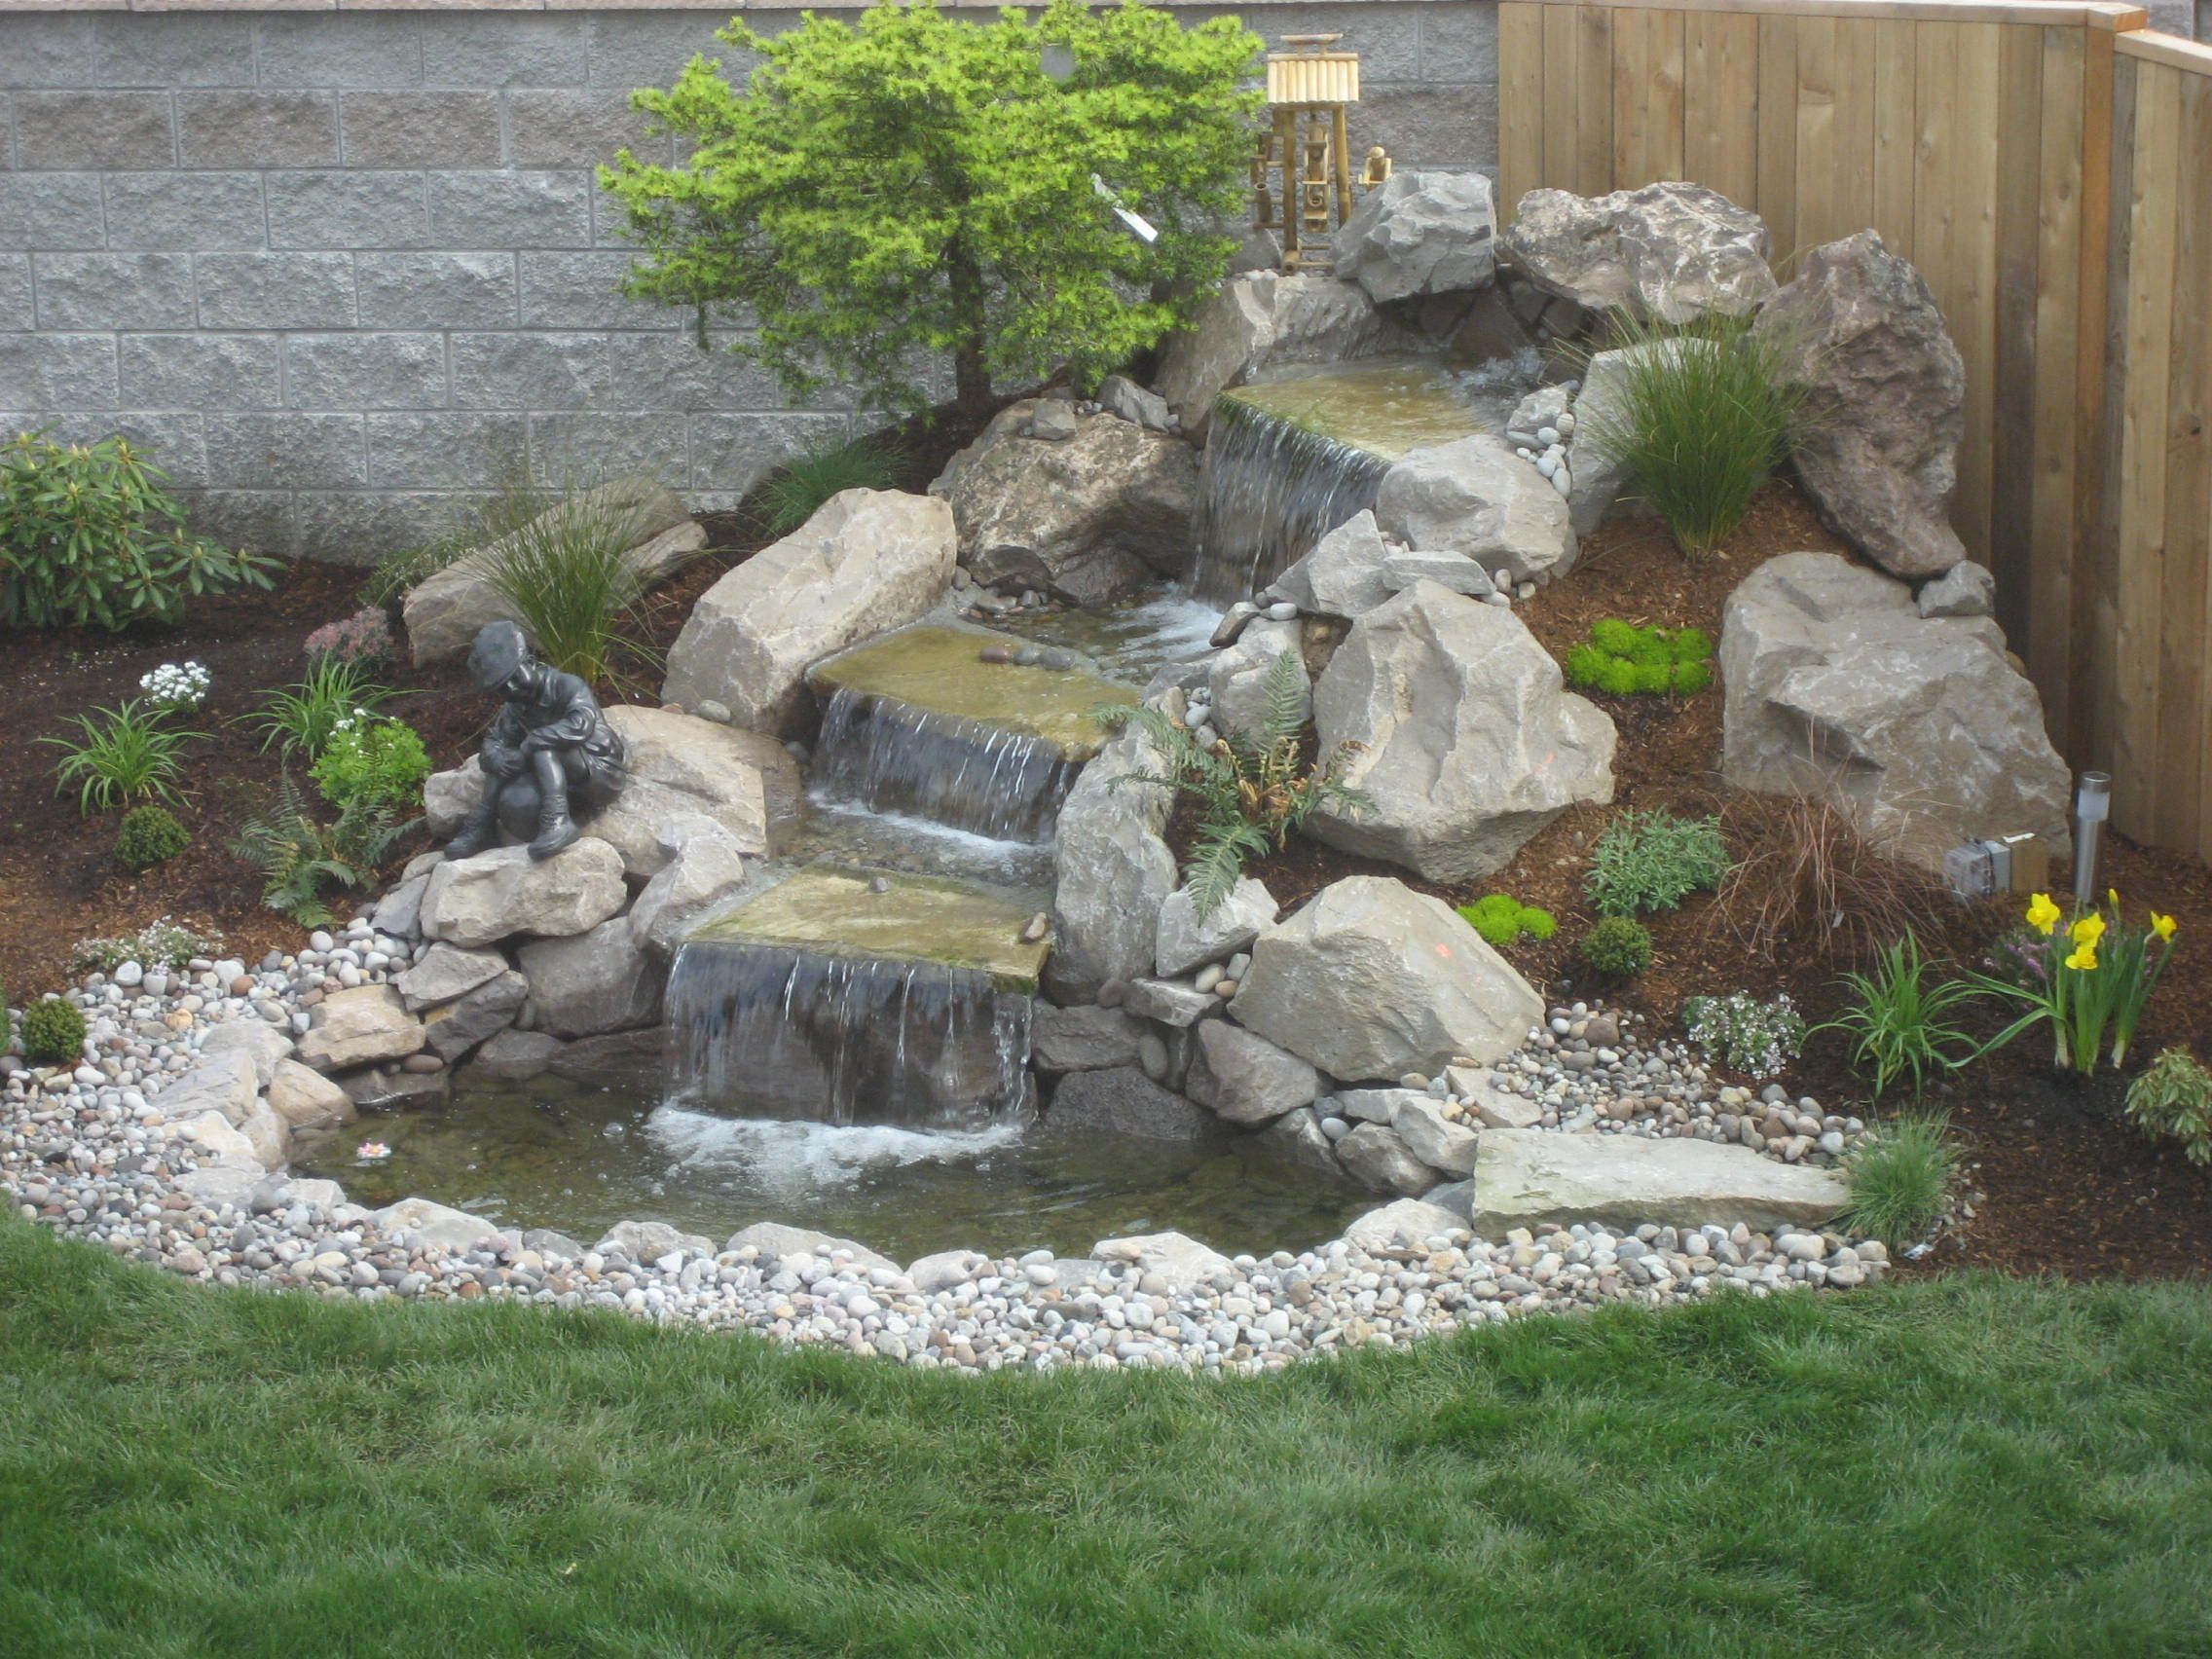 Landscape Garden Landscape Design Advice Creating Natural Waterfall In Your Garden Water Features In The Garden Waterfalls Backyard Waterfall Landscaping